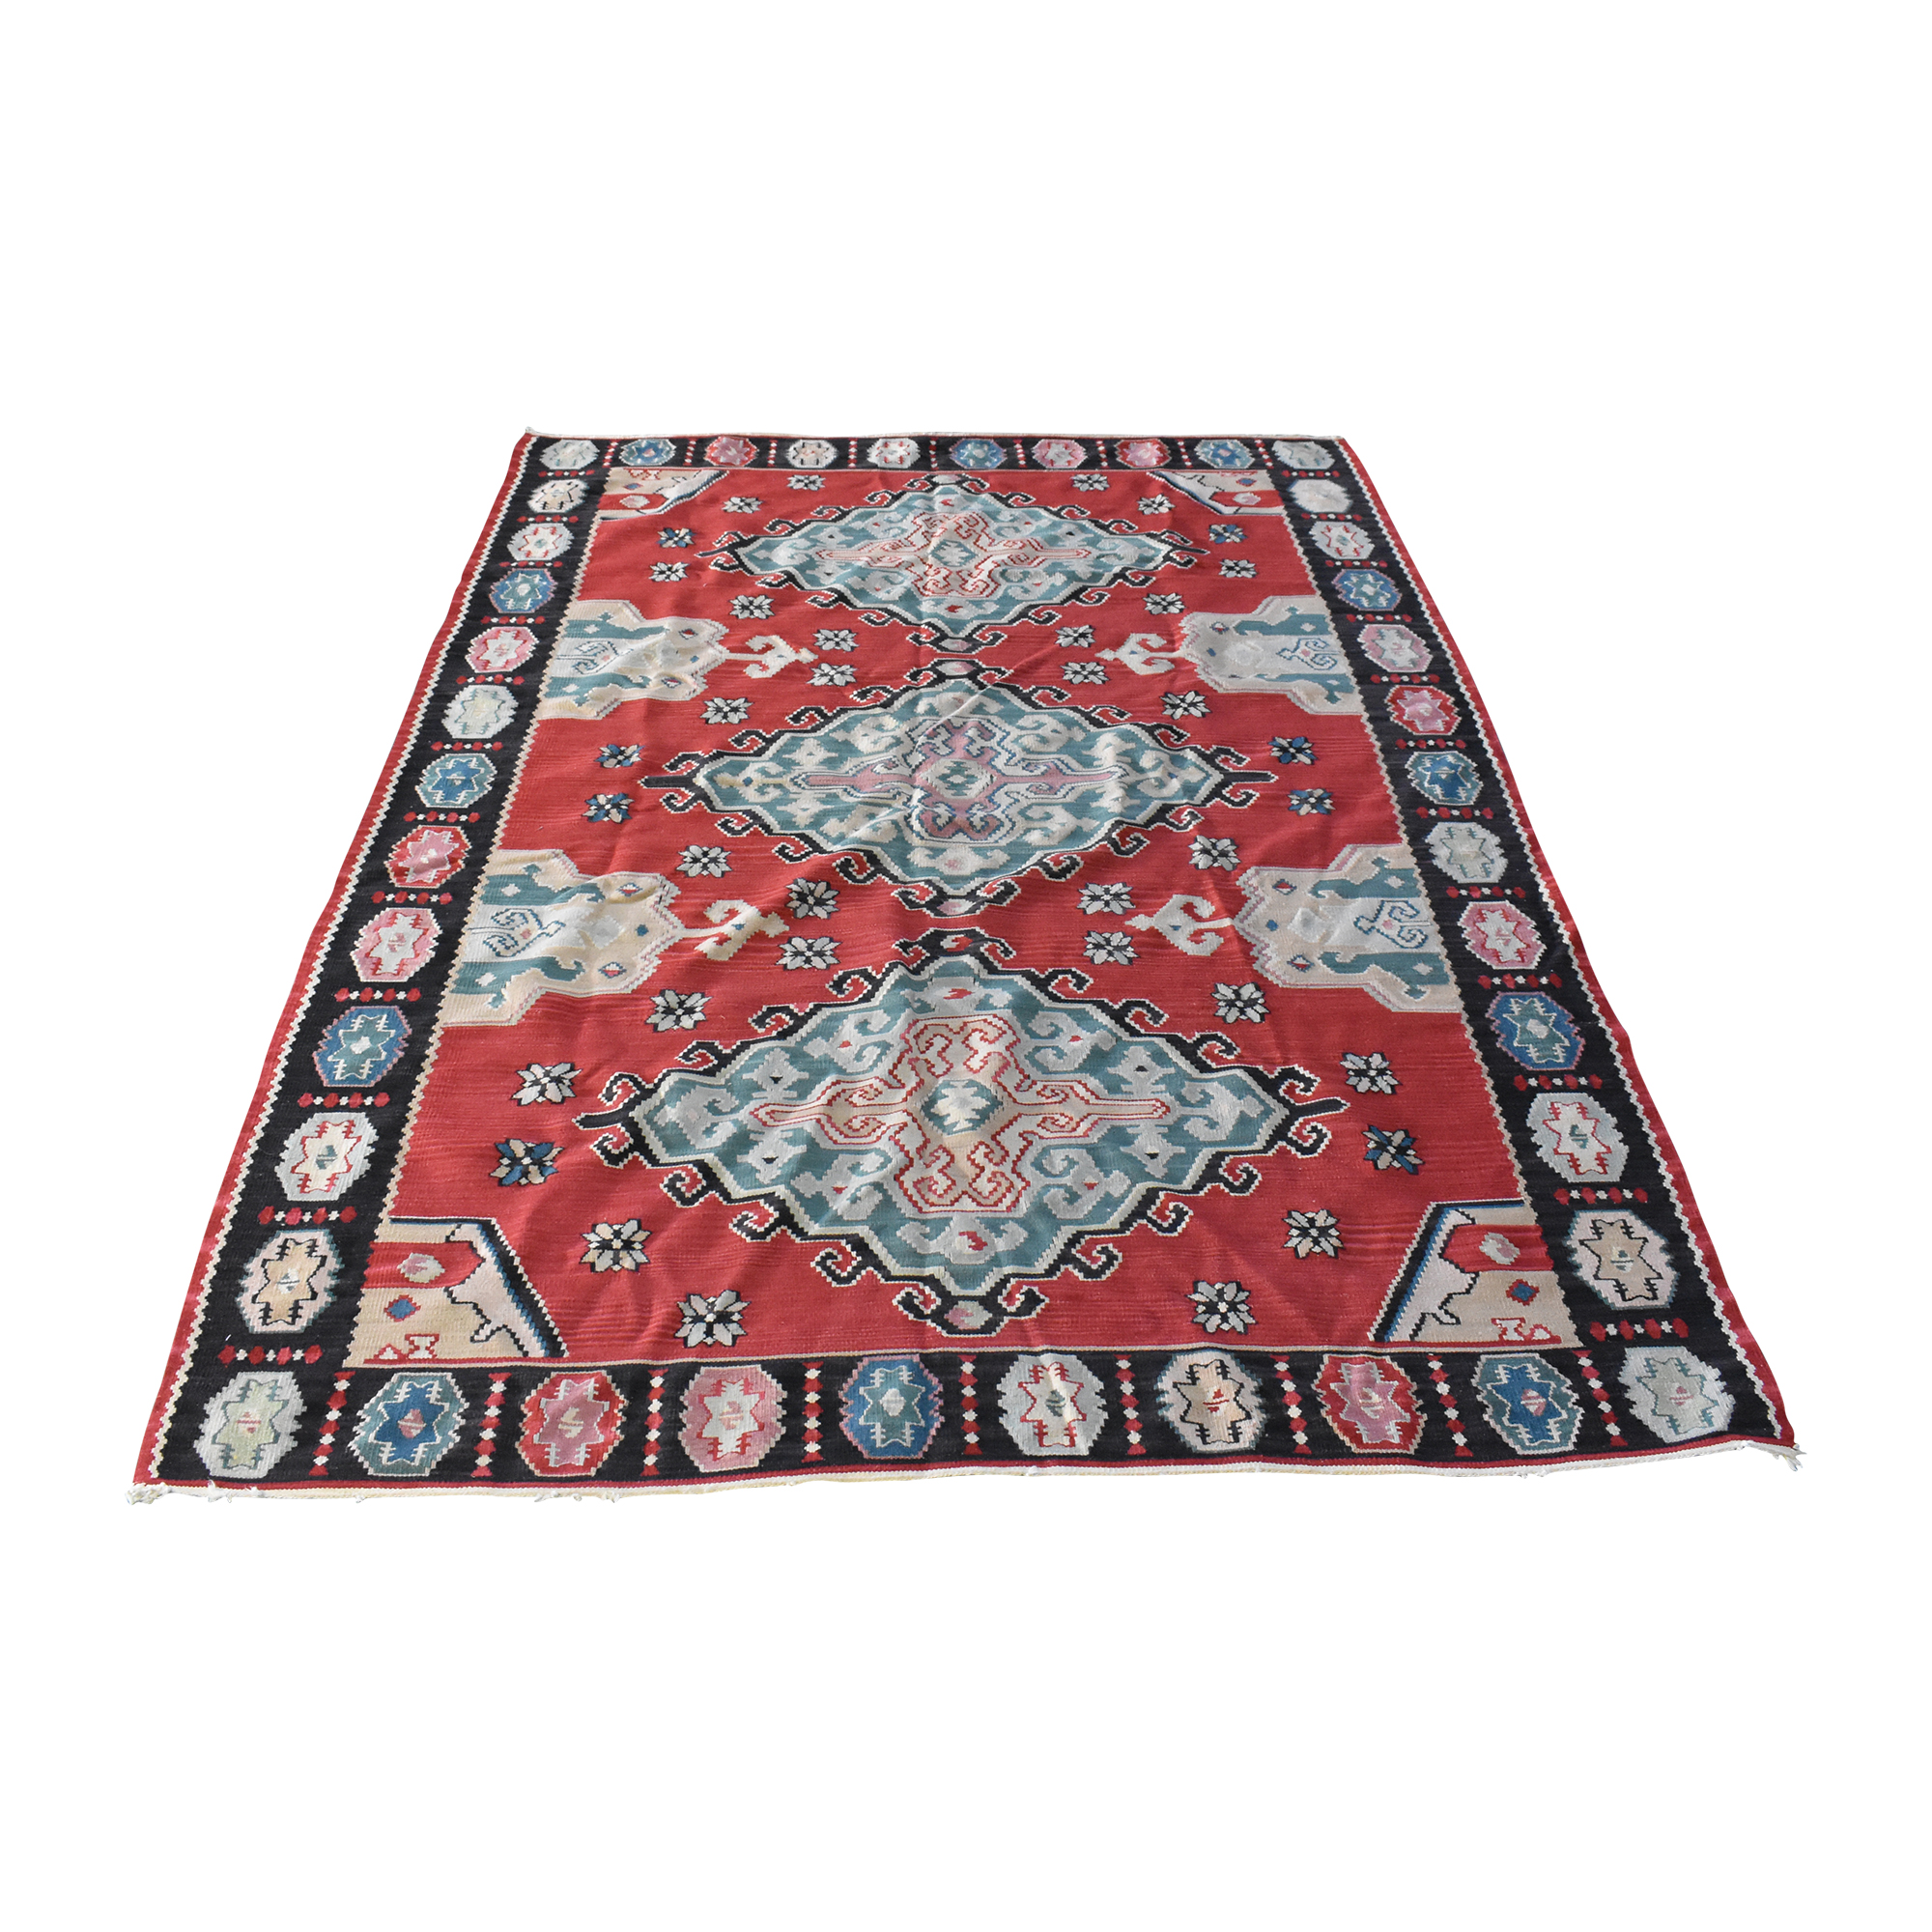 ABC Carpet & Home ABC Carpet & Home Turkish Kilim Area Rug dimensions